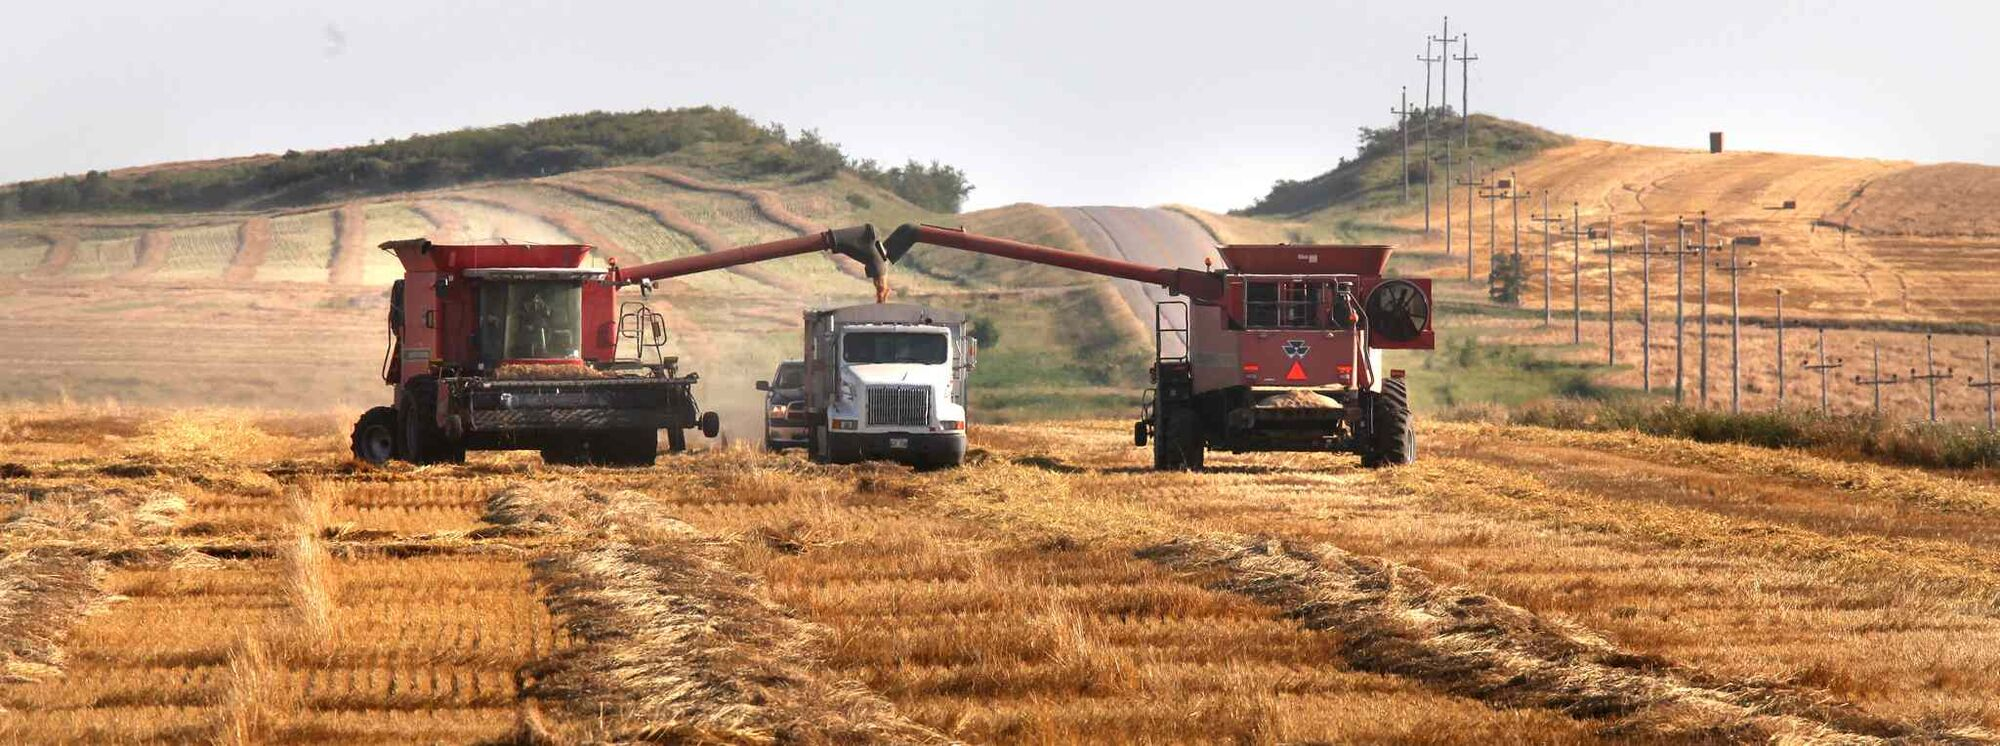 A pair of harvesters dump wheat into a waiting truck near Cardinal.